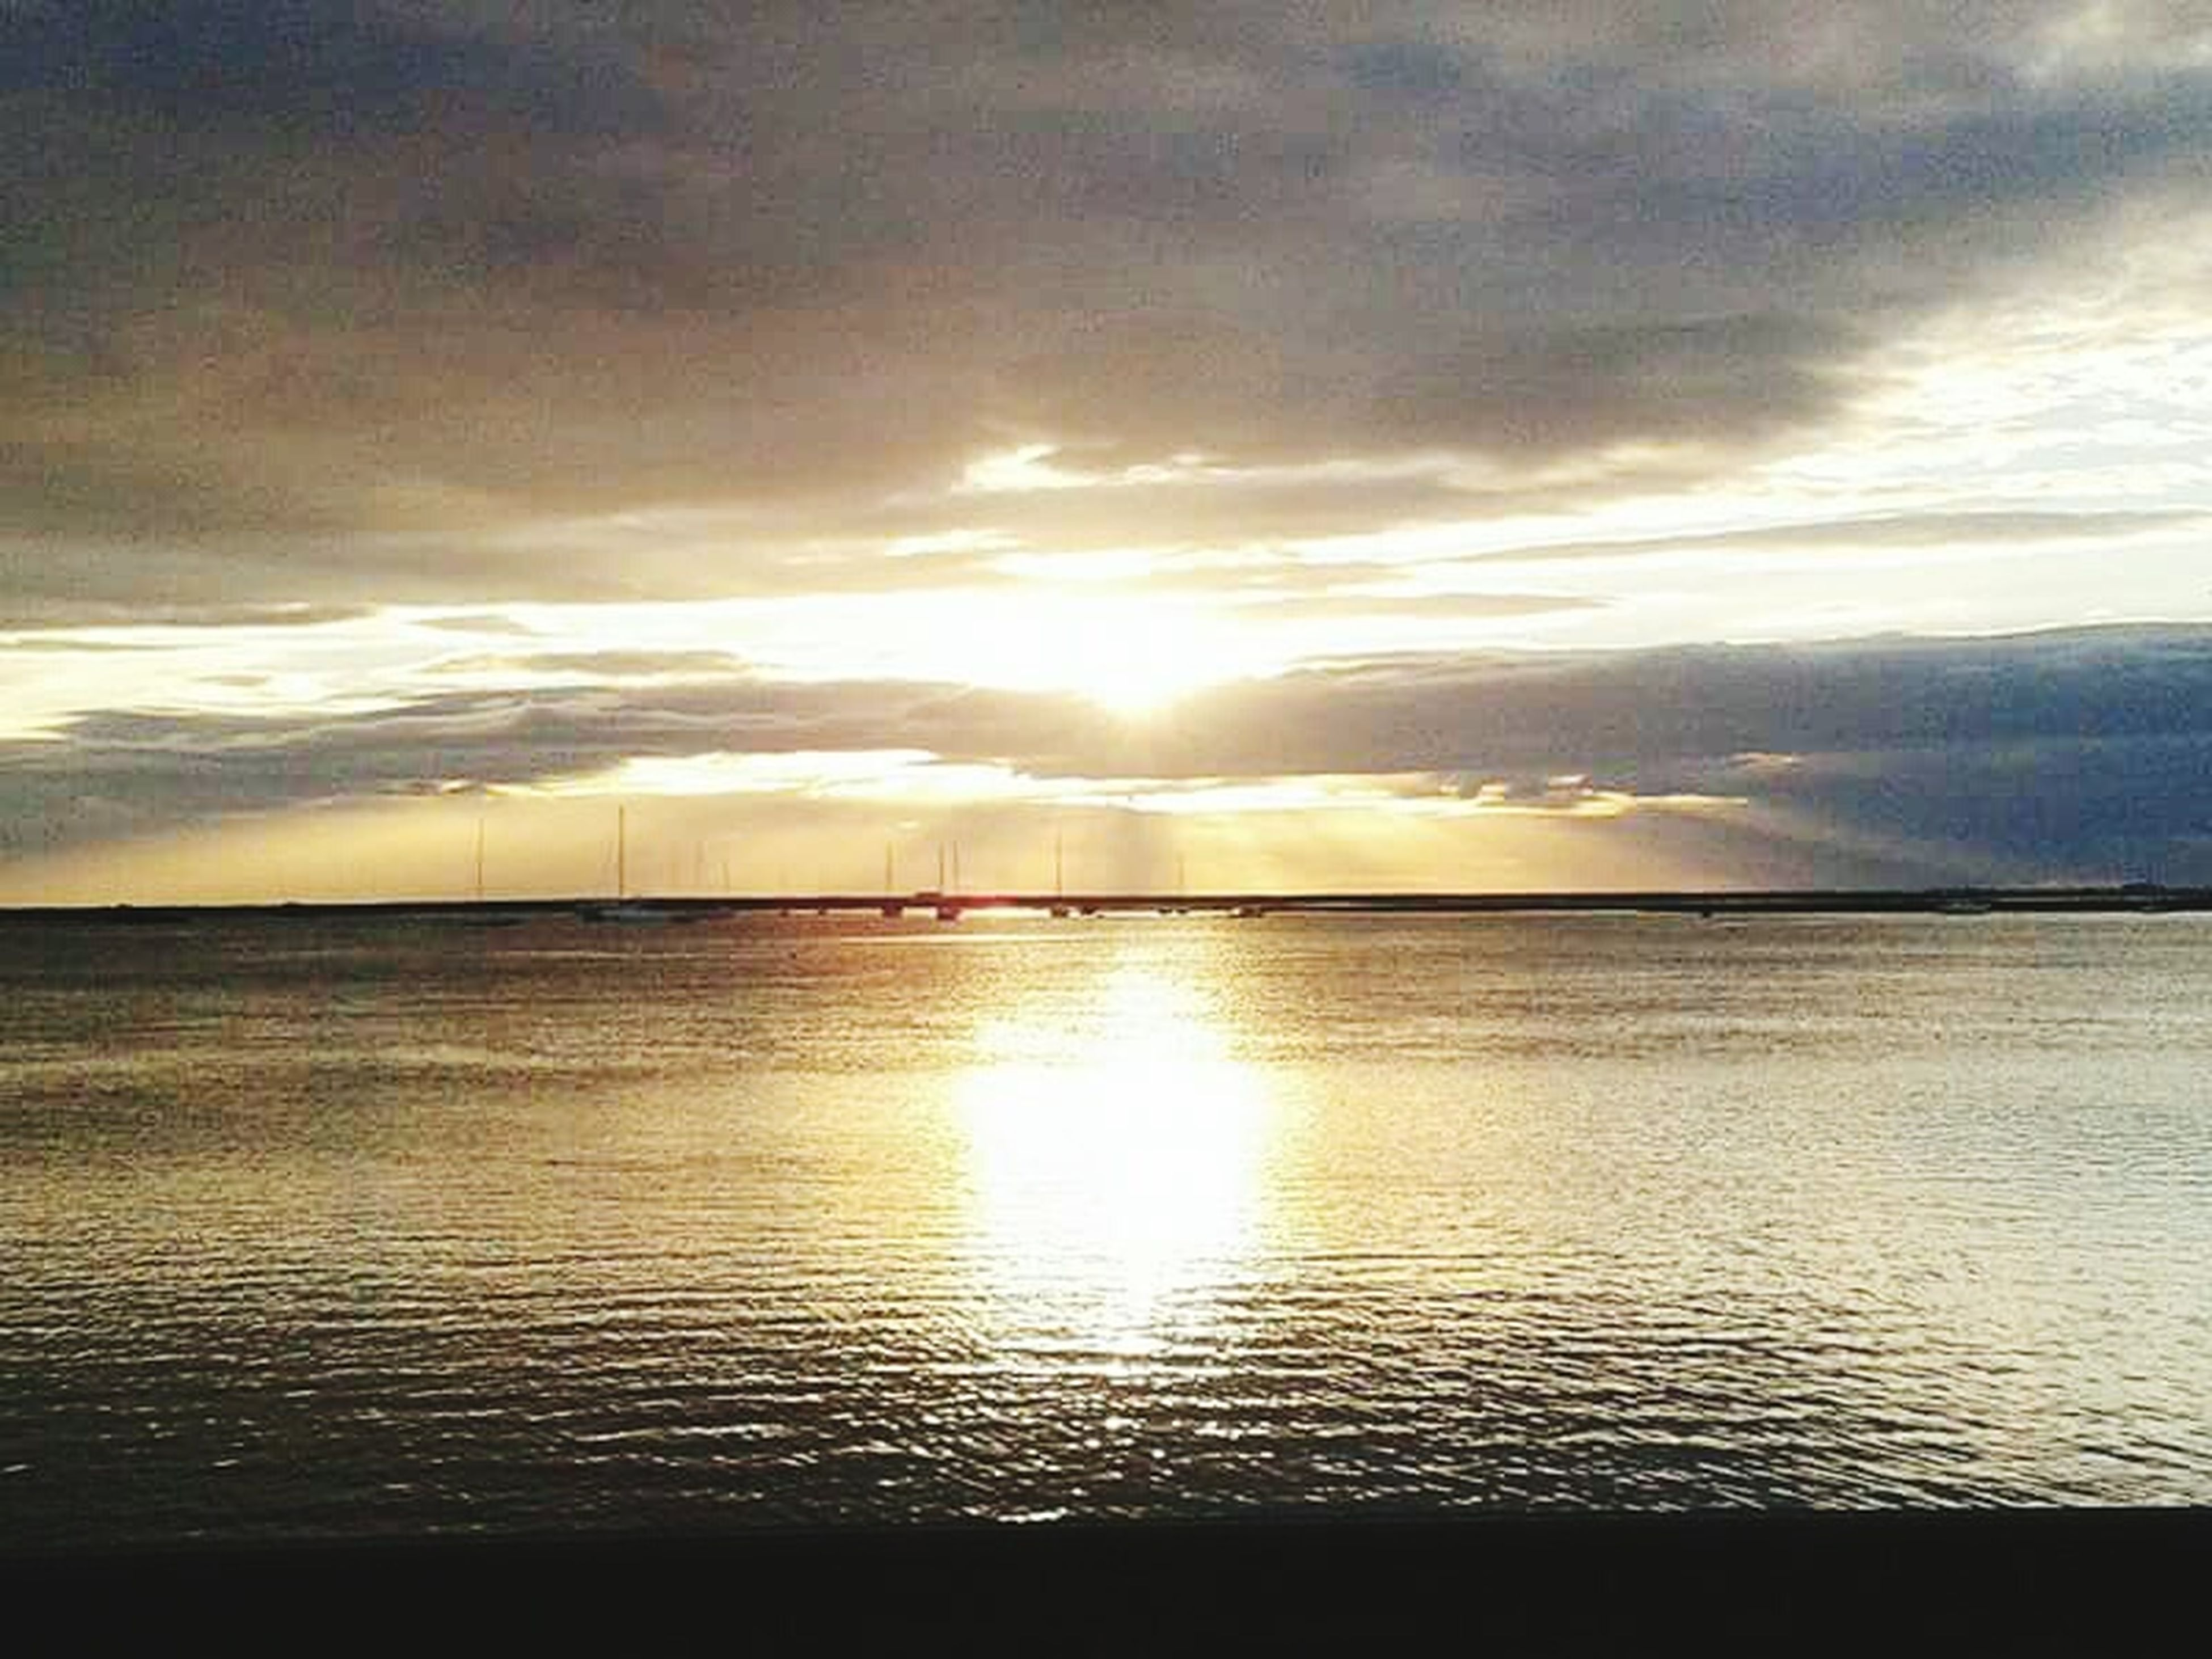 sunset, water, nature, beauty in nature, sea, tranquility, scenics, reflection, tranquil scene, sky, horizon over water, outdoors, beach, cloud - sky, no people, day